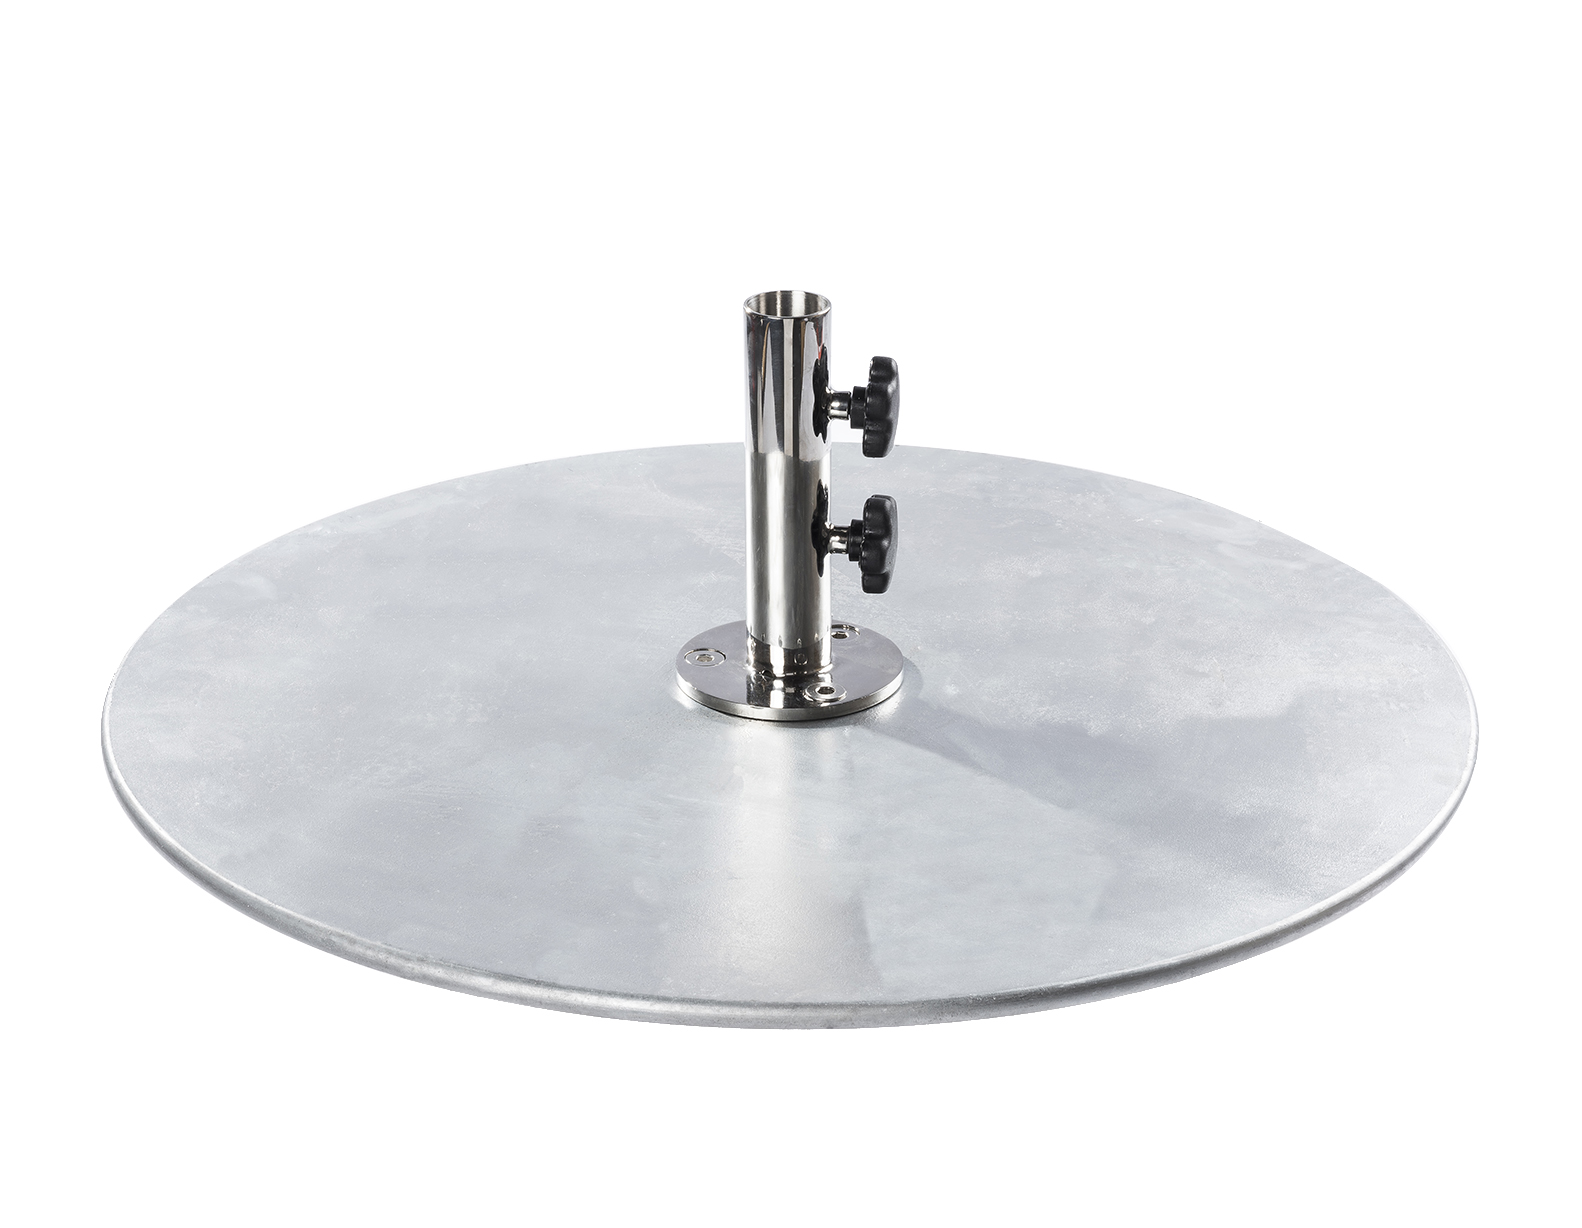 30″ Round Galvanized Steel Plate Base